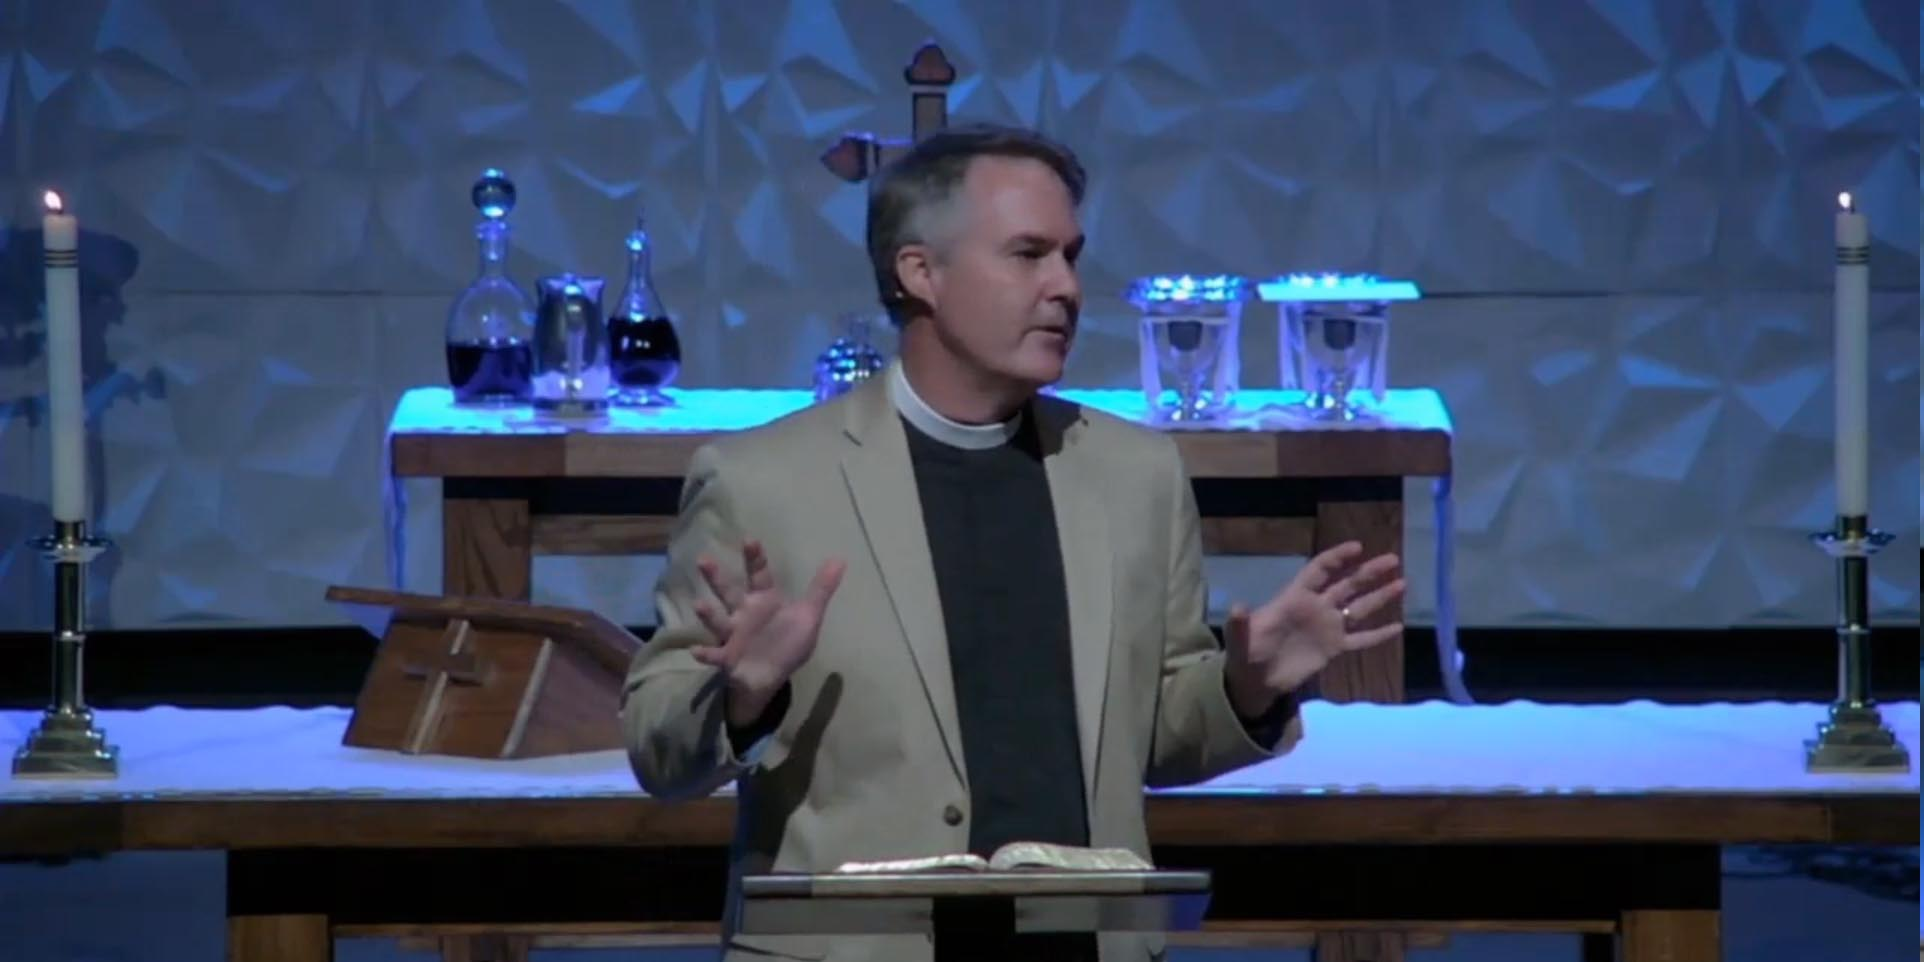 Christ Aligned & Spirit Attuned - Sermon by the Rev. Charlie Holt